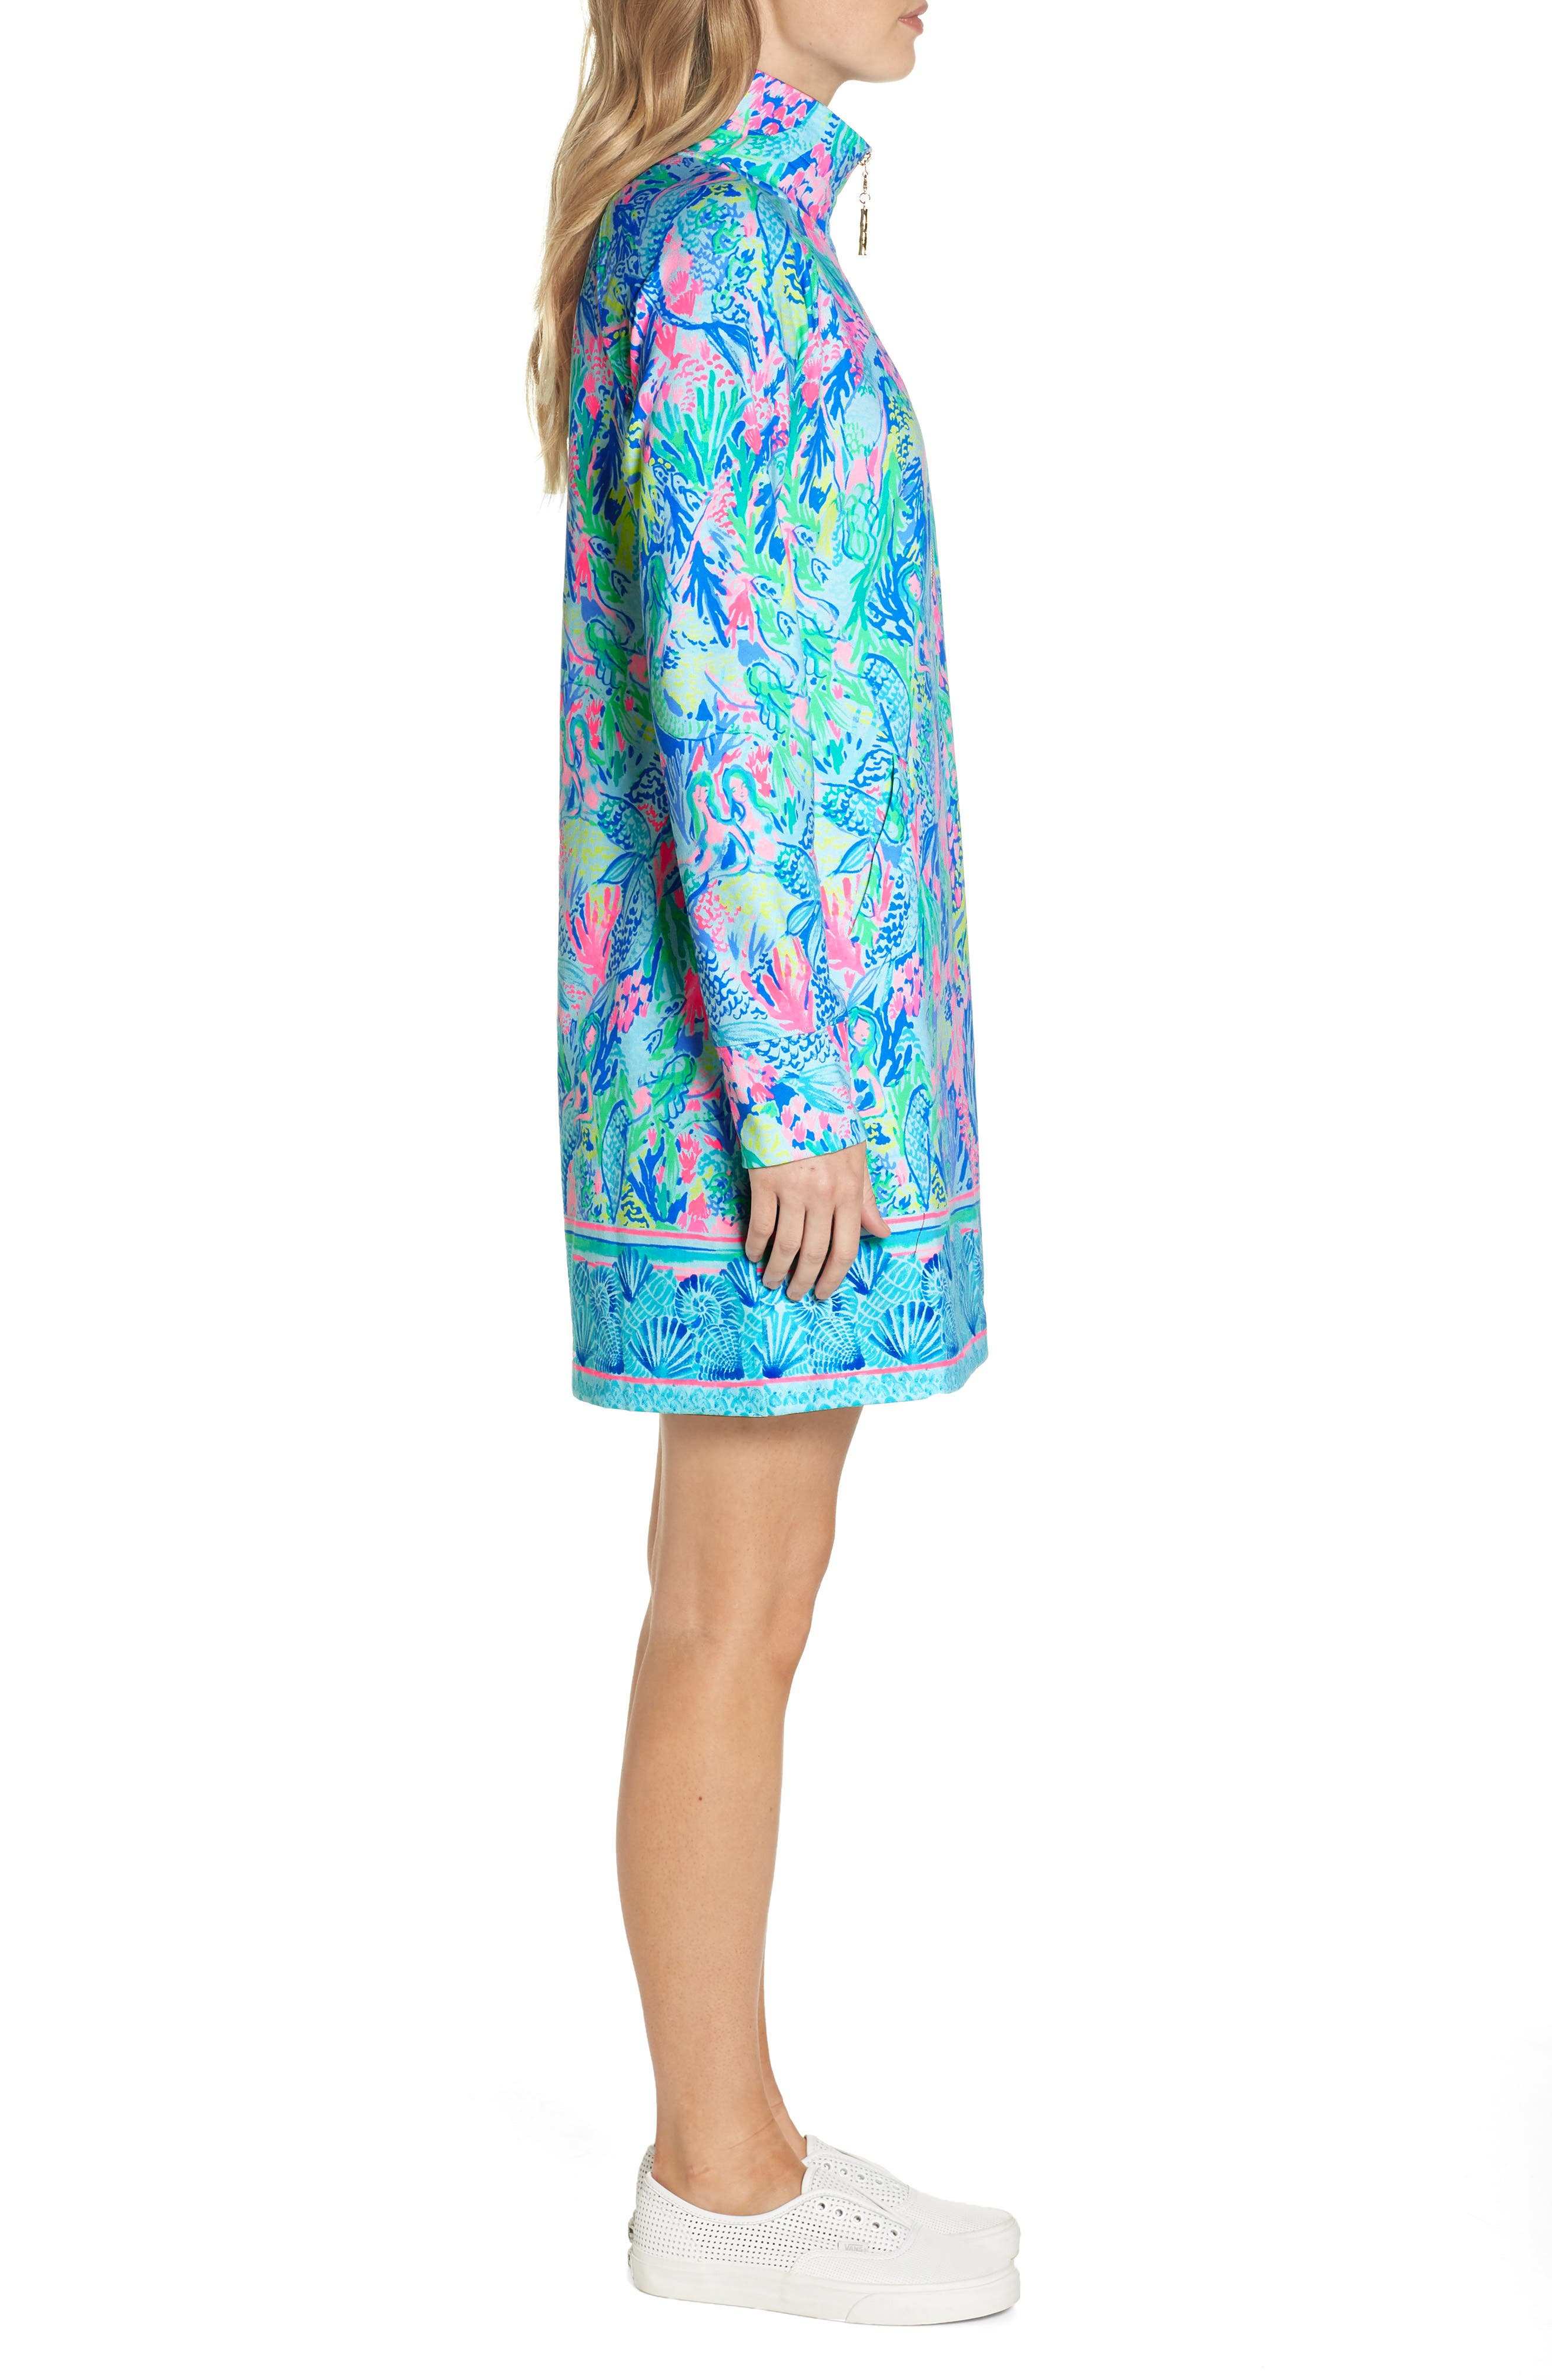 LILLY PULITZER<SUP>®</SUP>,                             Lilly Pulitzer Skipper Shift Dress,                             Alternate thumbnail 3, color,                             449